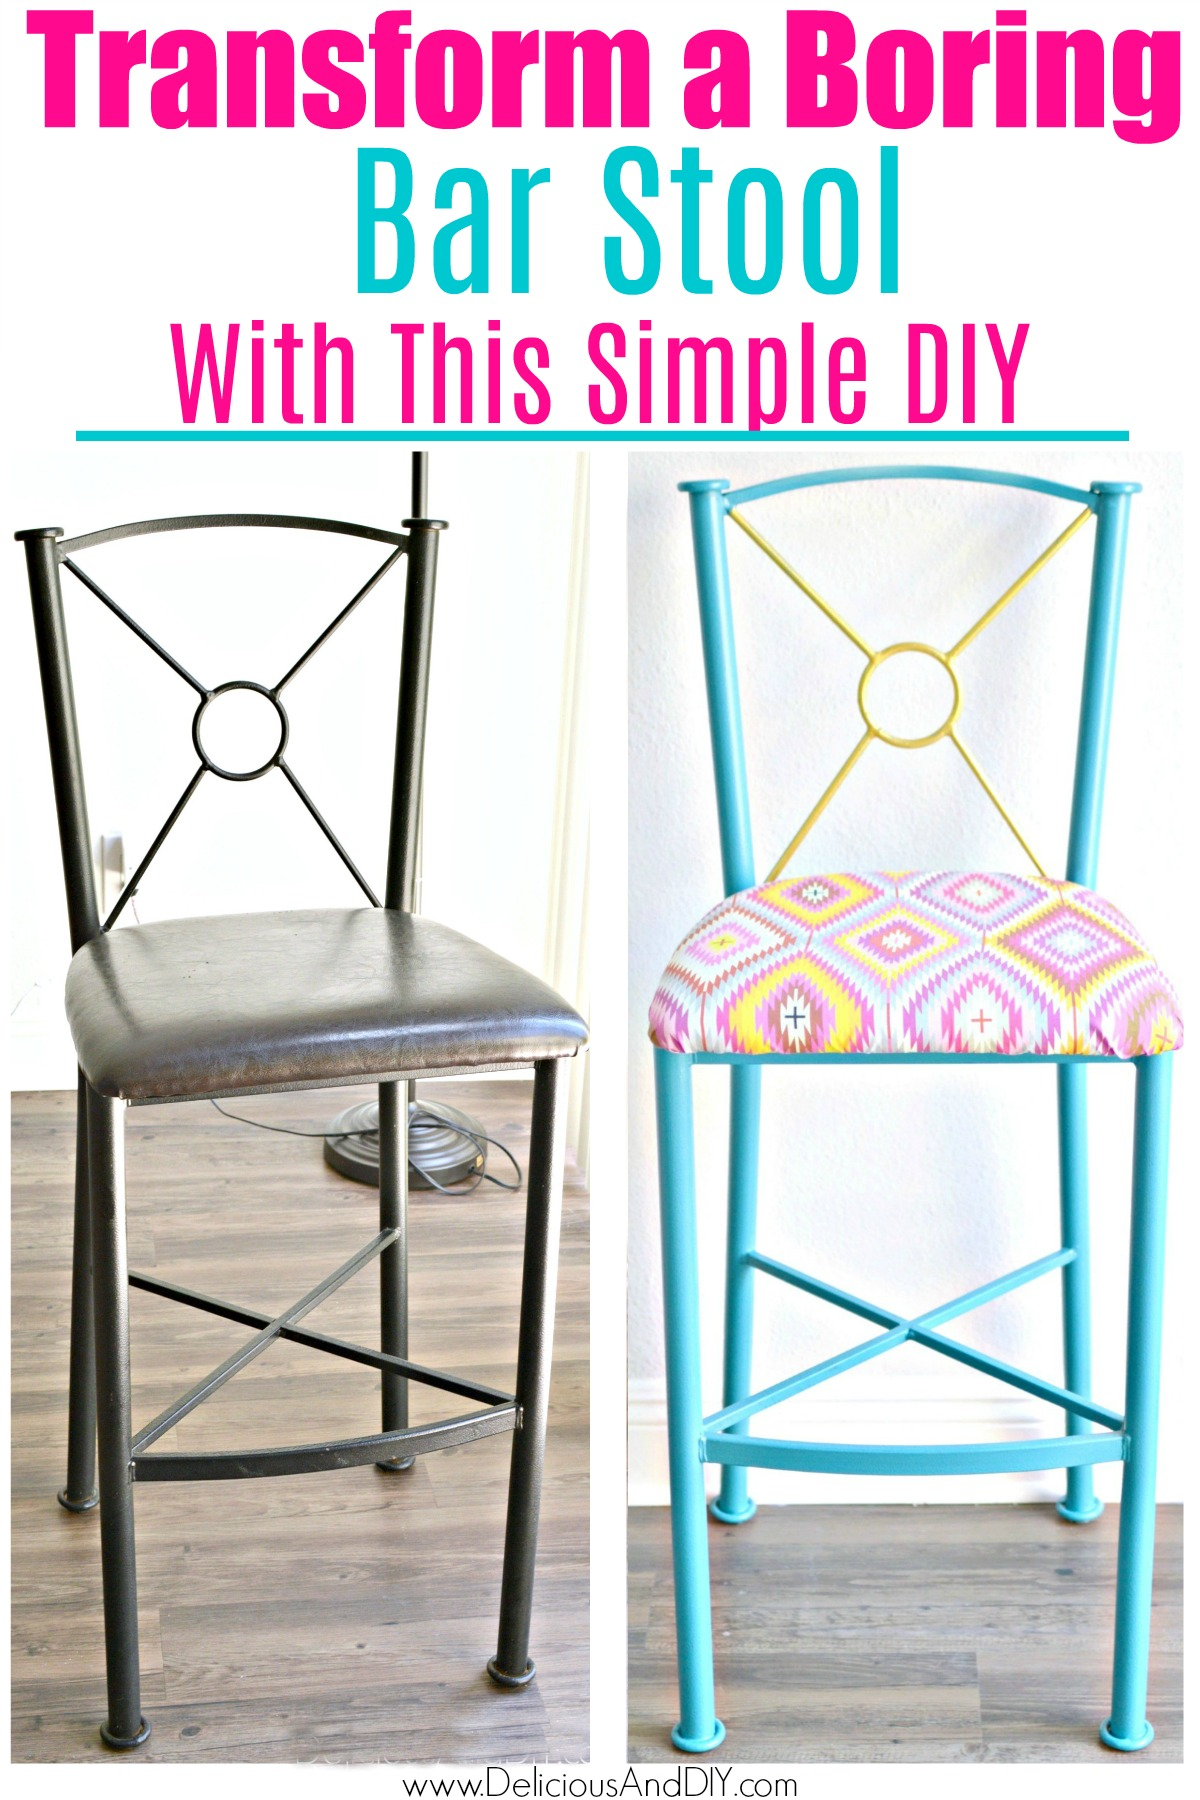 Remarkable Diy Bar Stool Makeover Under 30 Minutes Delicious And Diy Squirreltailoven Fun Painted Chair Ideas Images Squirreltailovenorg